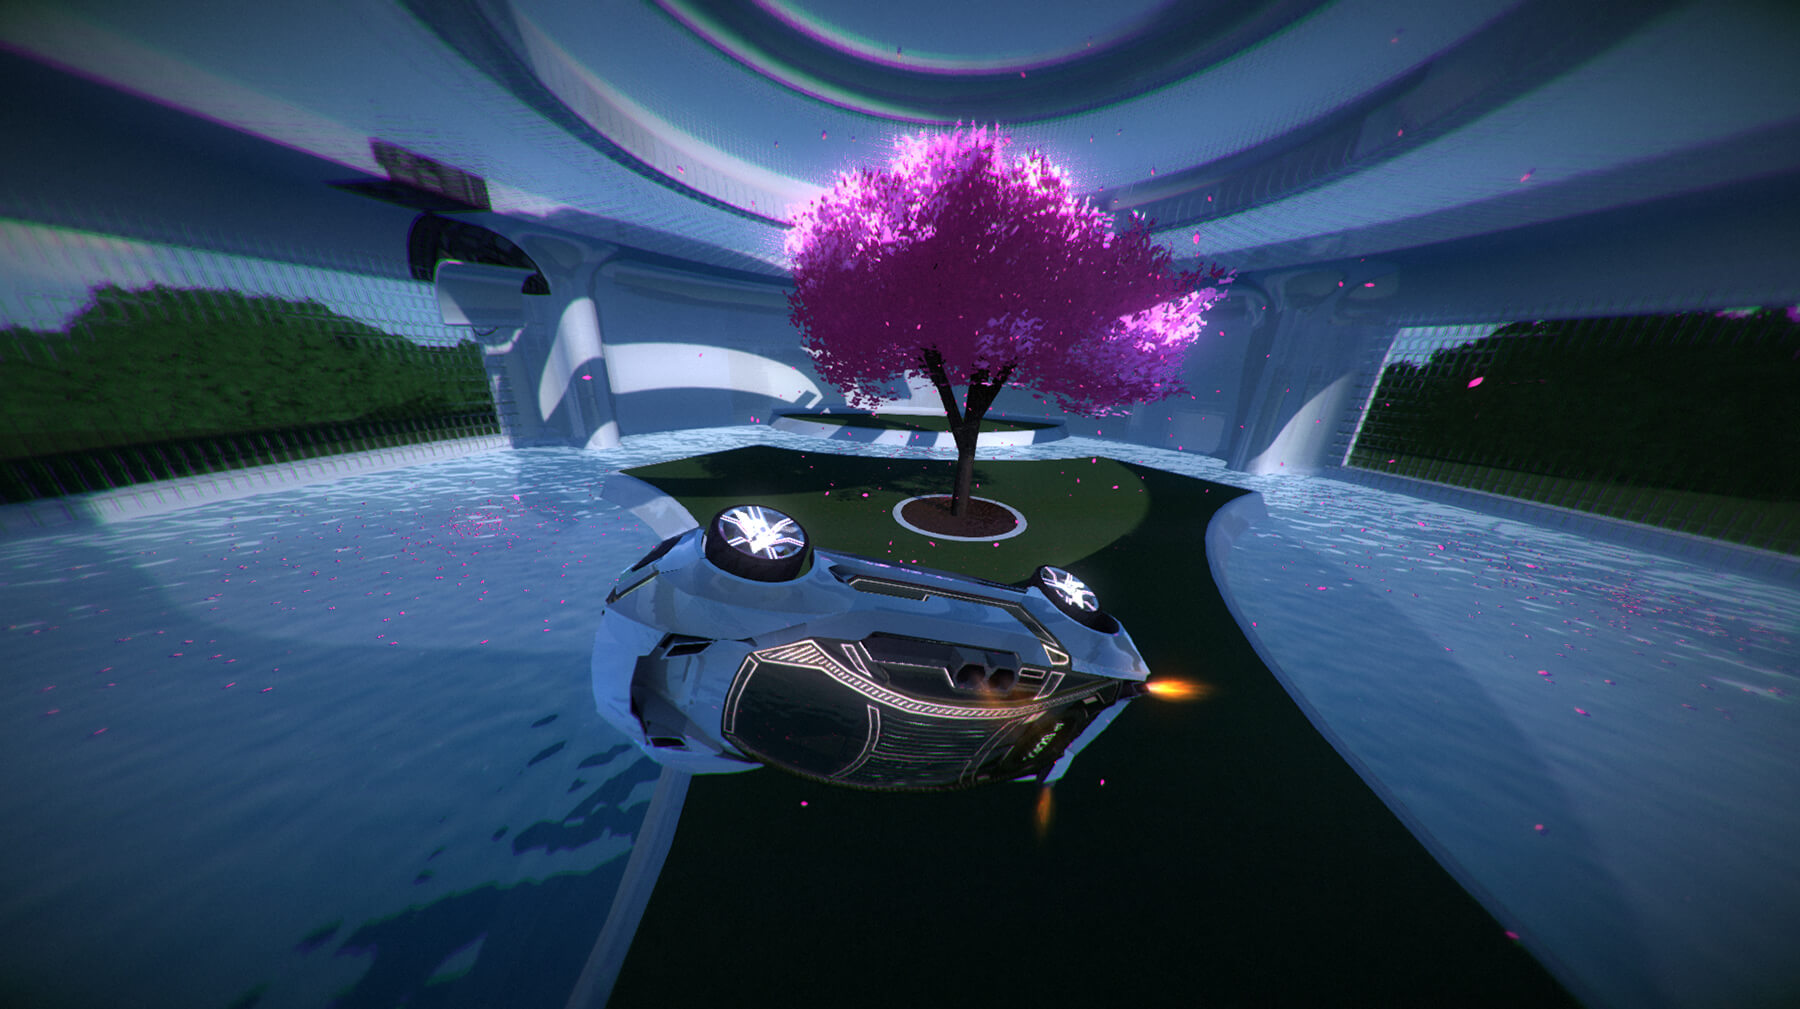 Screenshot from Refract Studios' Distance v1.0 featuring a race car on its side near a cherry tree